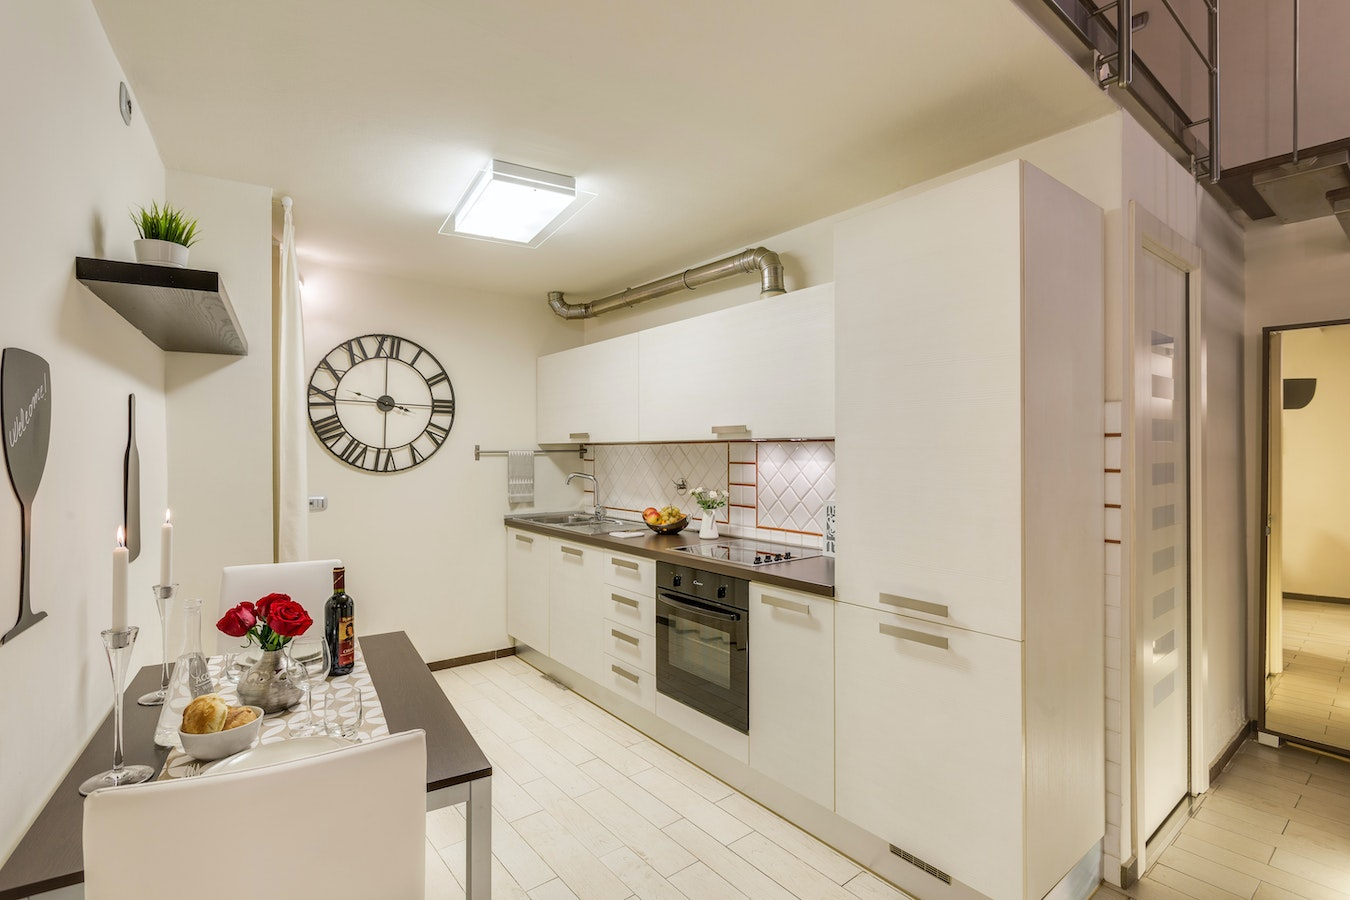 loft le murate vacation apartment in florence italy near santa croce